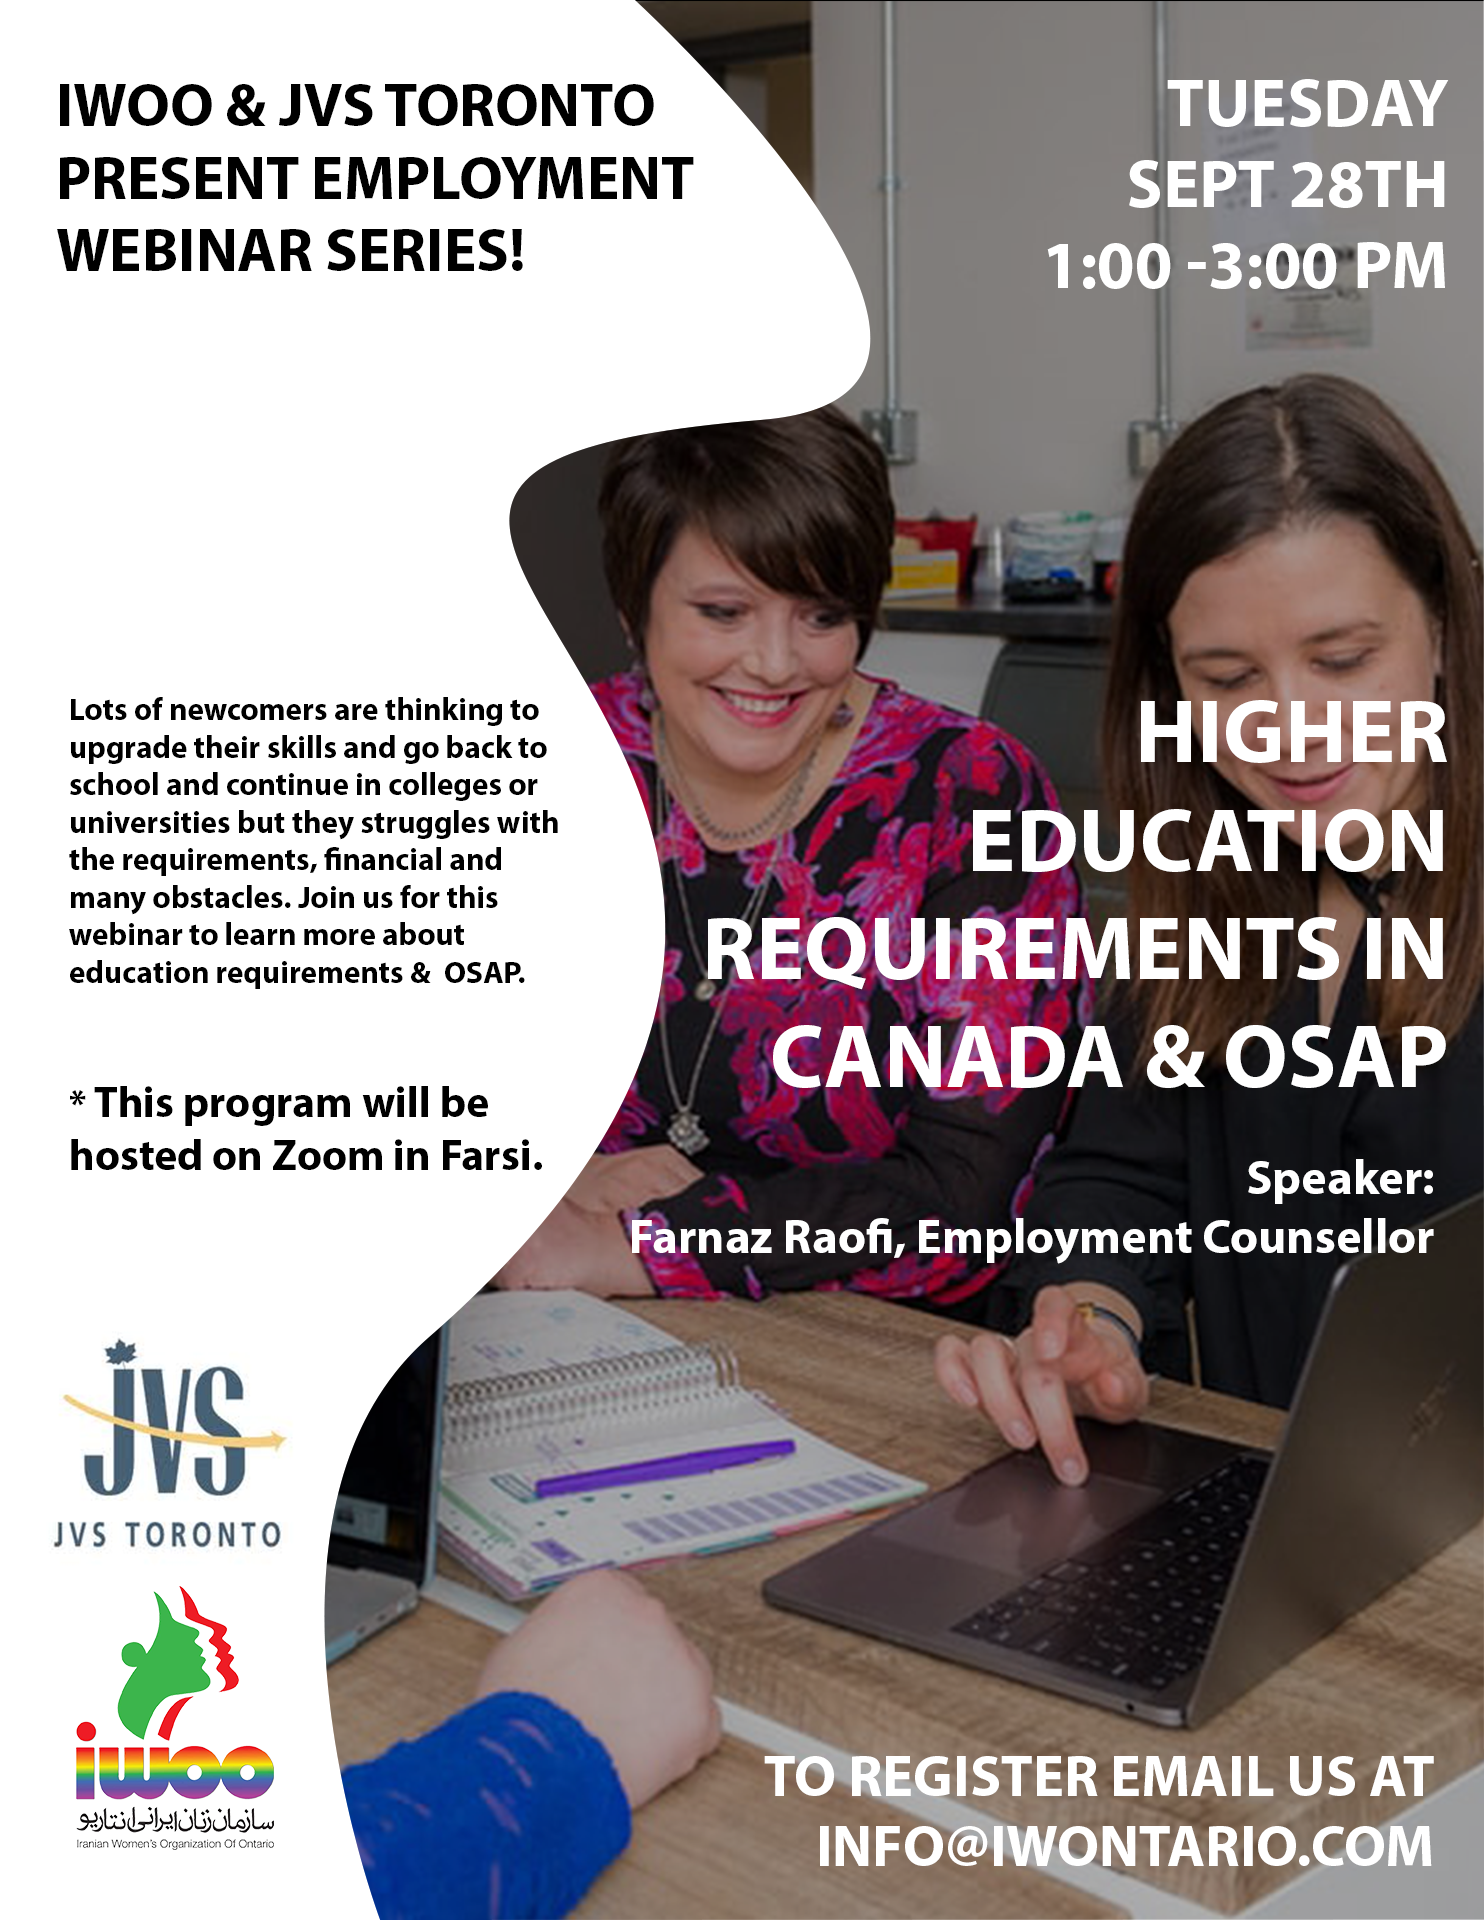 Higher Education Requirements in Canada & OSAP